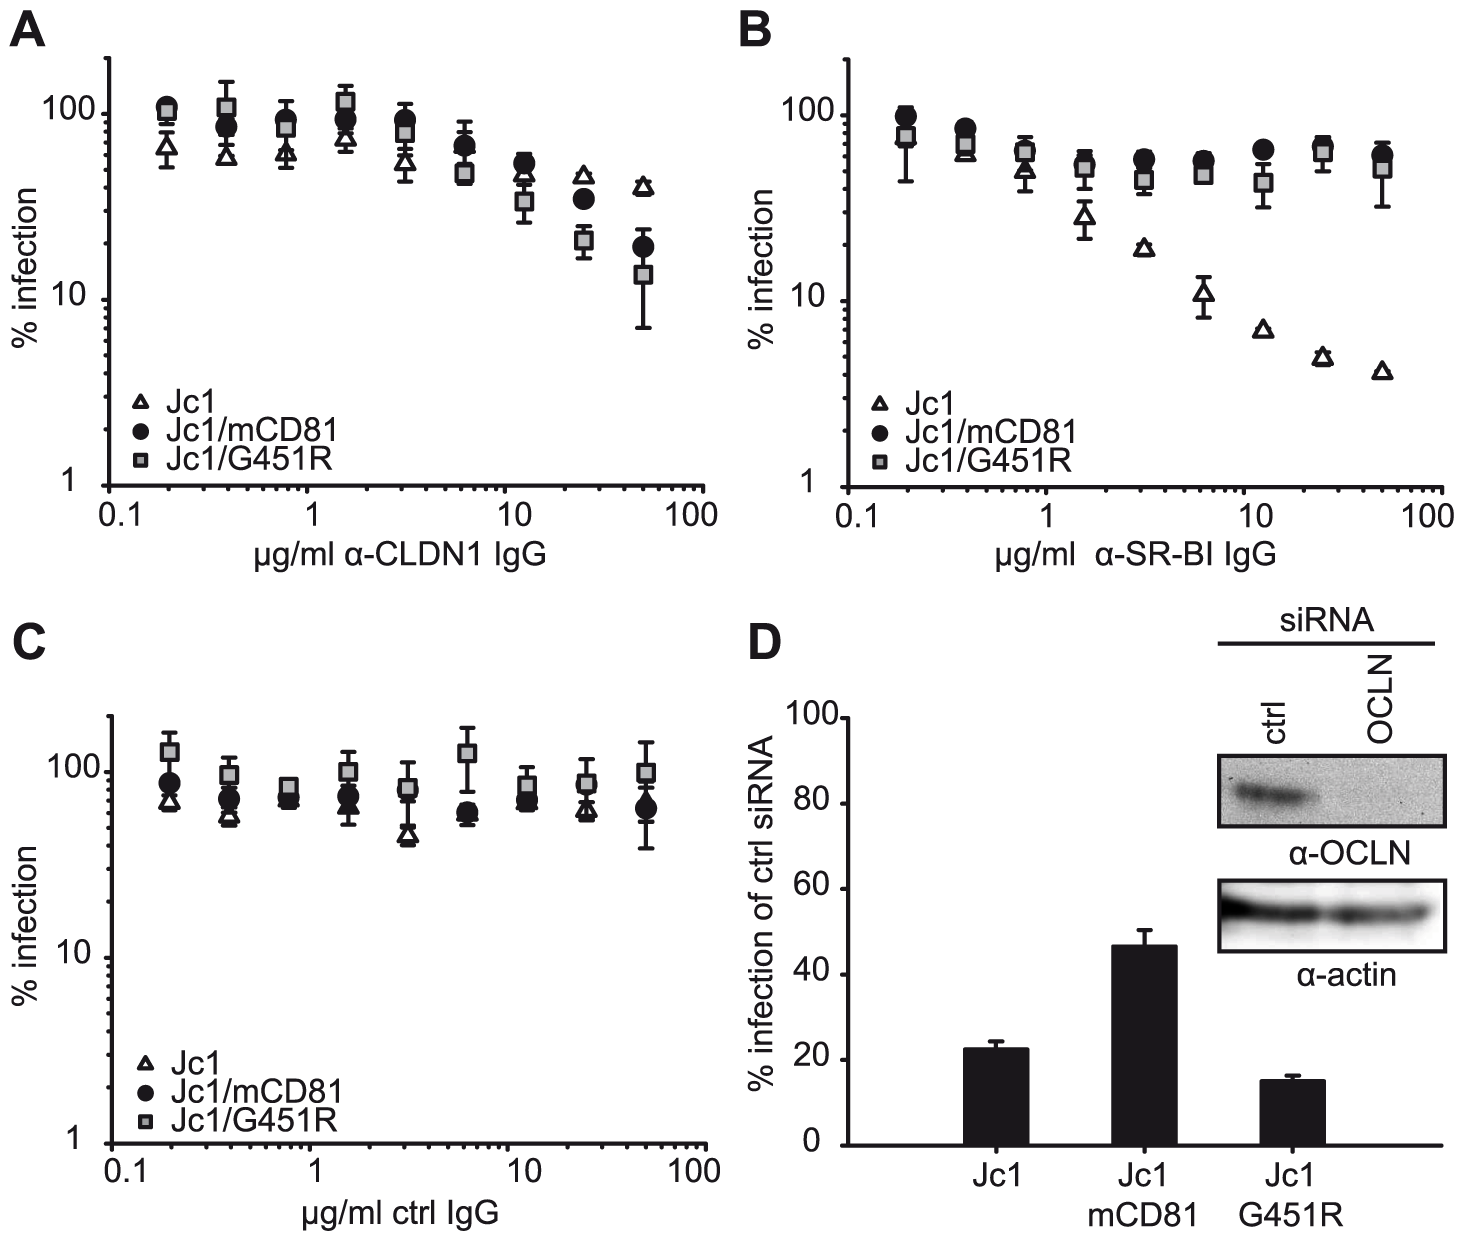 Dependence of wildtype and mutant HCV on SR-BI, CLDN1 and OCLN.